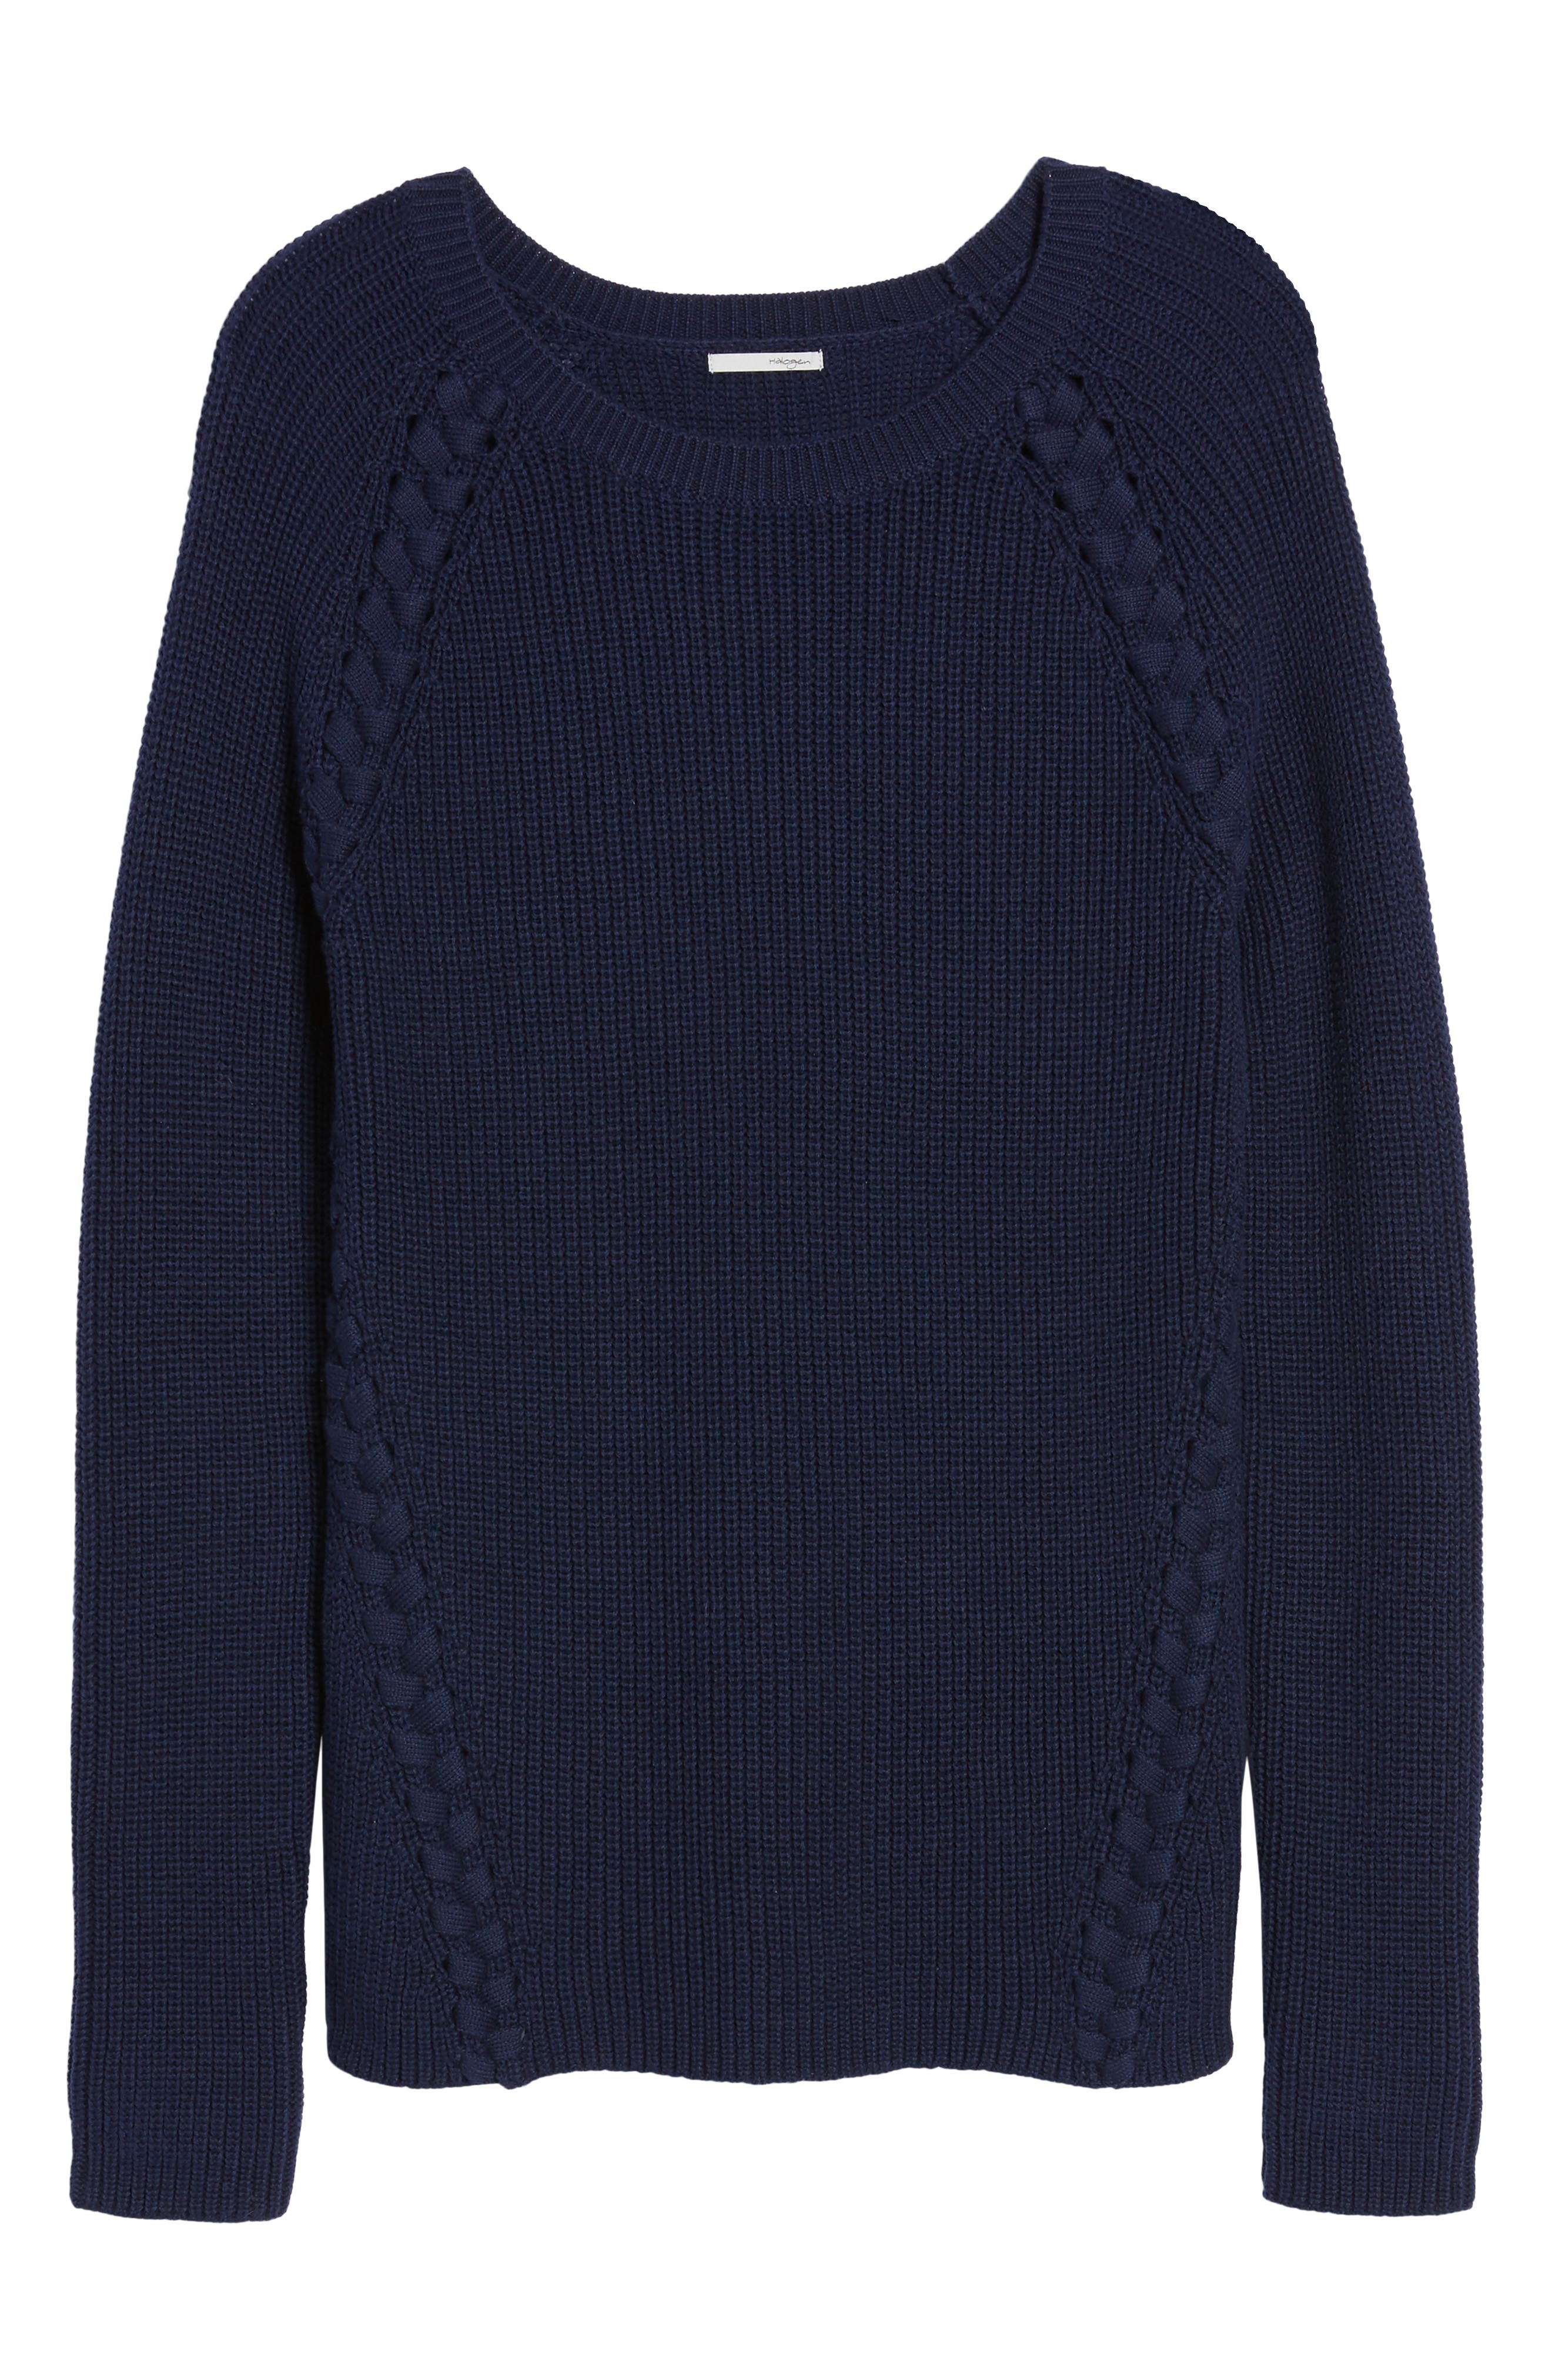 Lace-Up Sweater,                             Alternate thumbnail 6, color,                             410